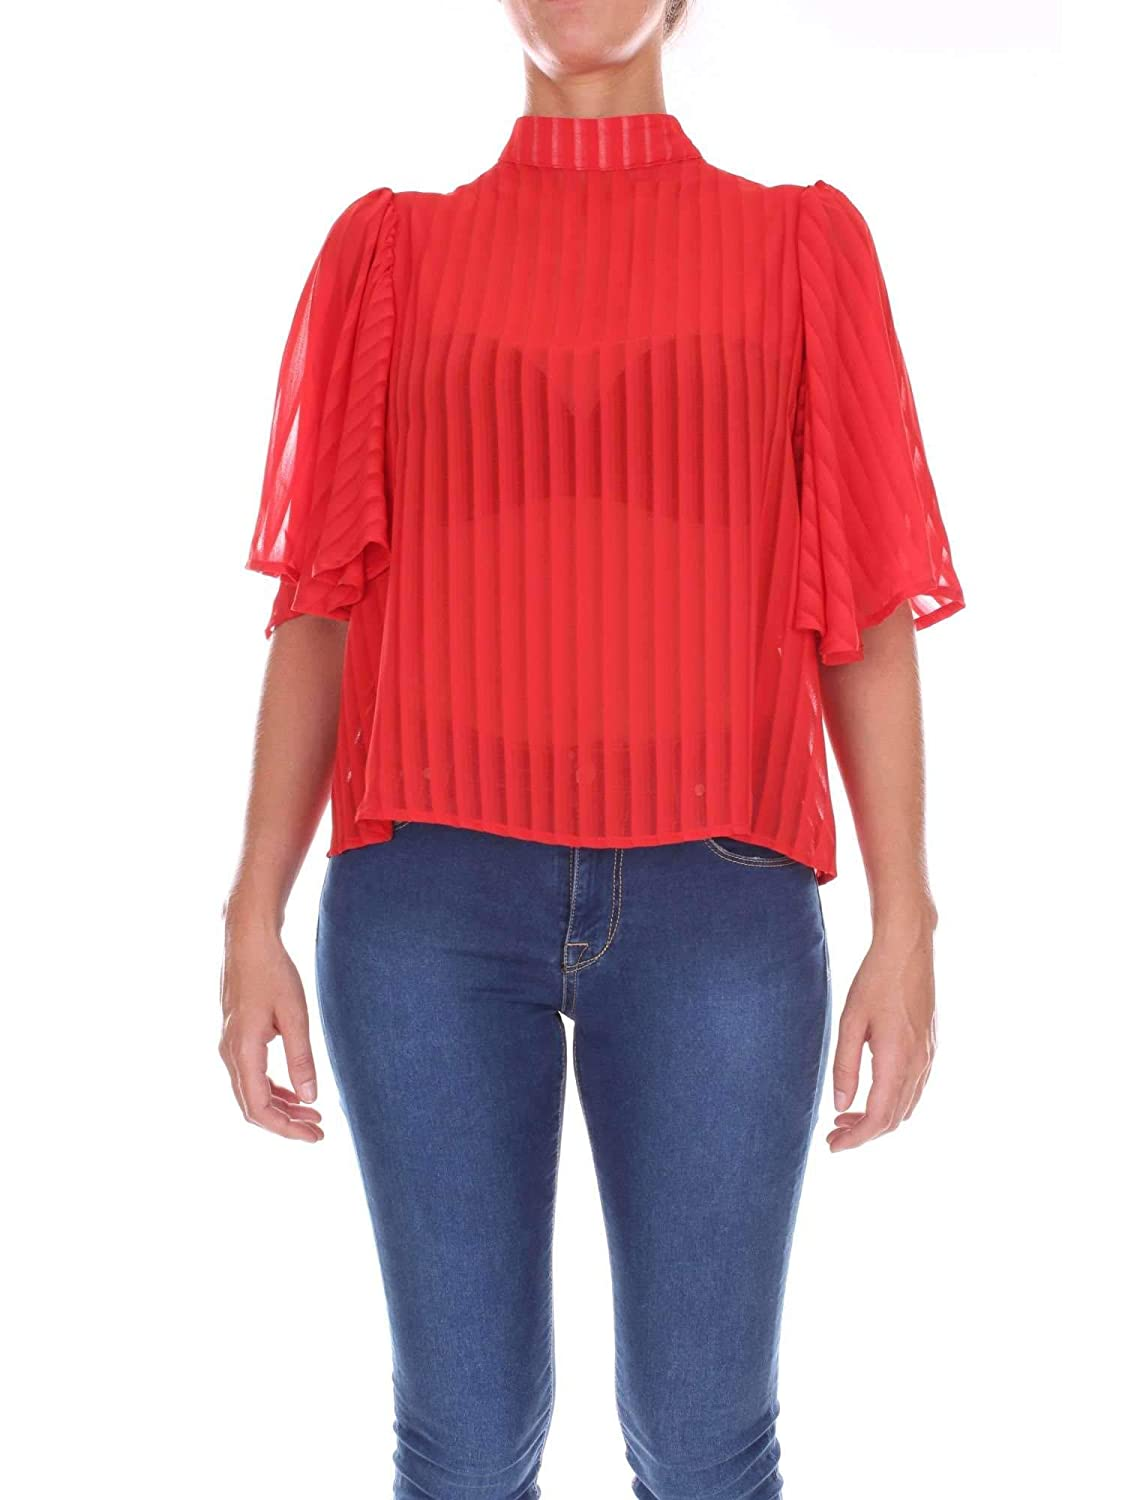 Nineminutes Women's VOLANTSTRIPEred Red Polyester Top